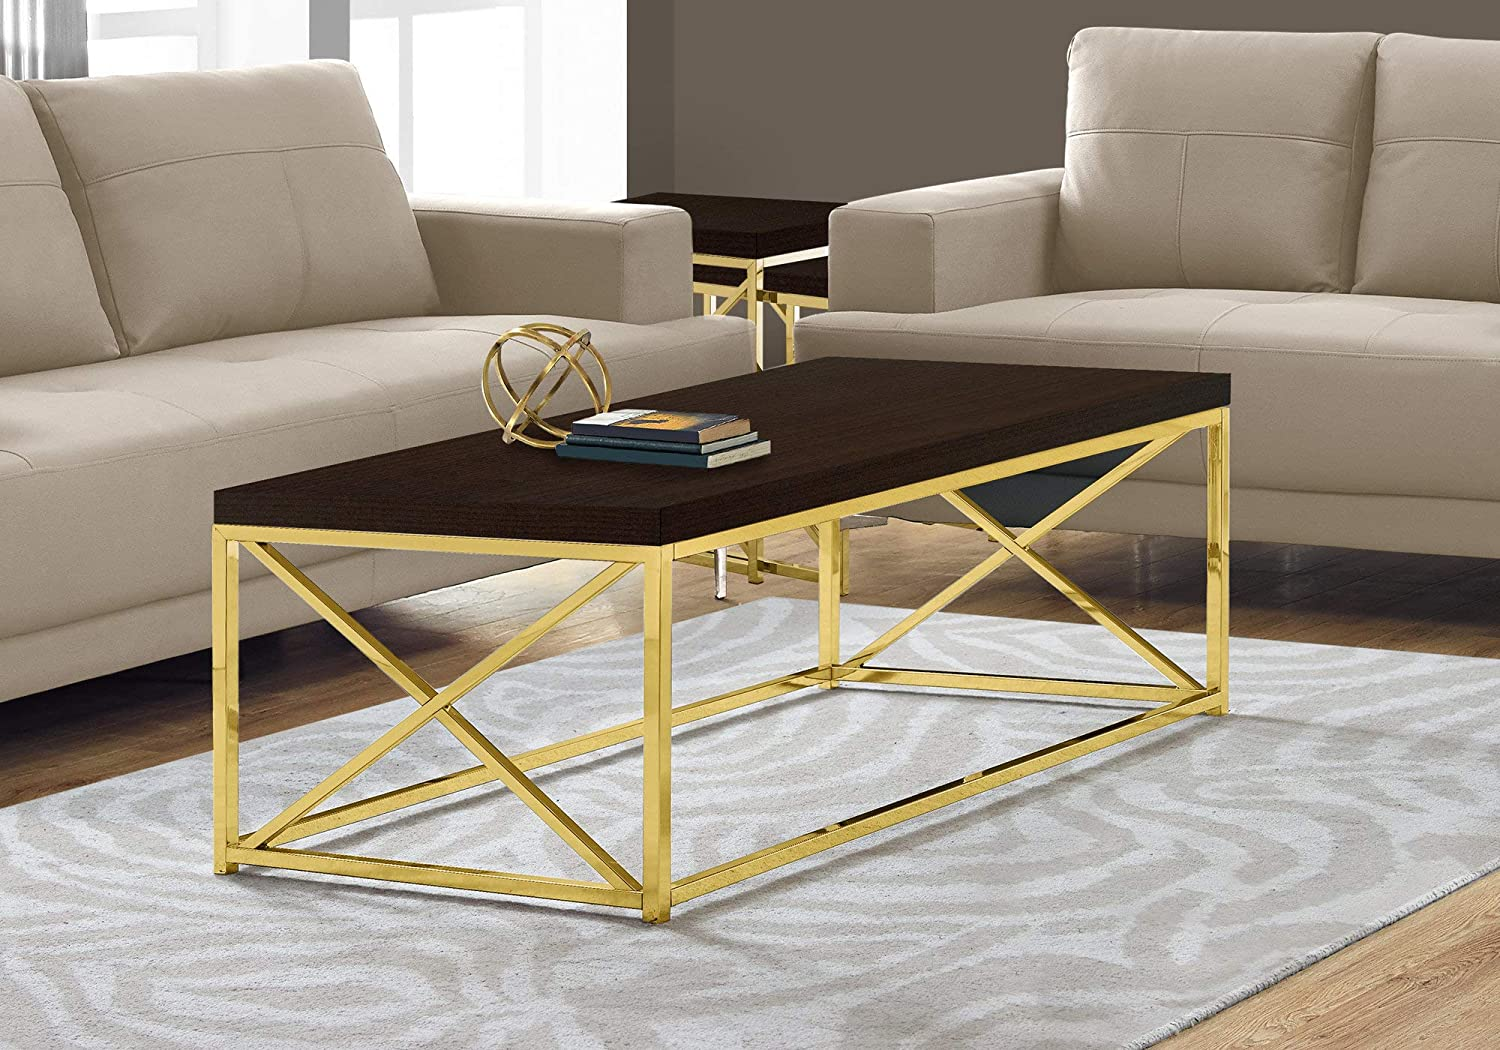 Amazon Com Monarch Specialties Modern Coffee Table For Living Room Center Table With Metal Frame 44 Inch L Cappuccino Gold Furniture Decor